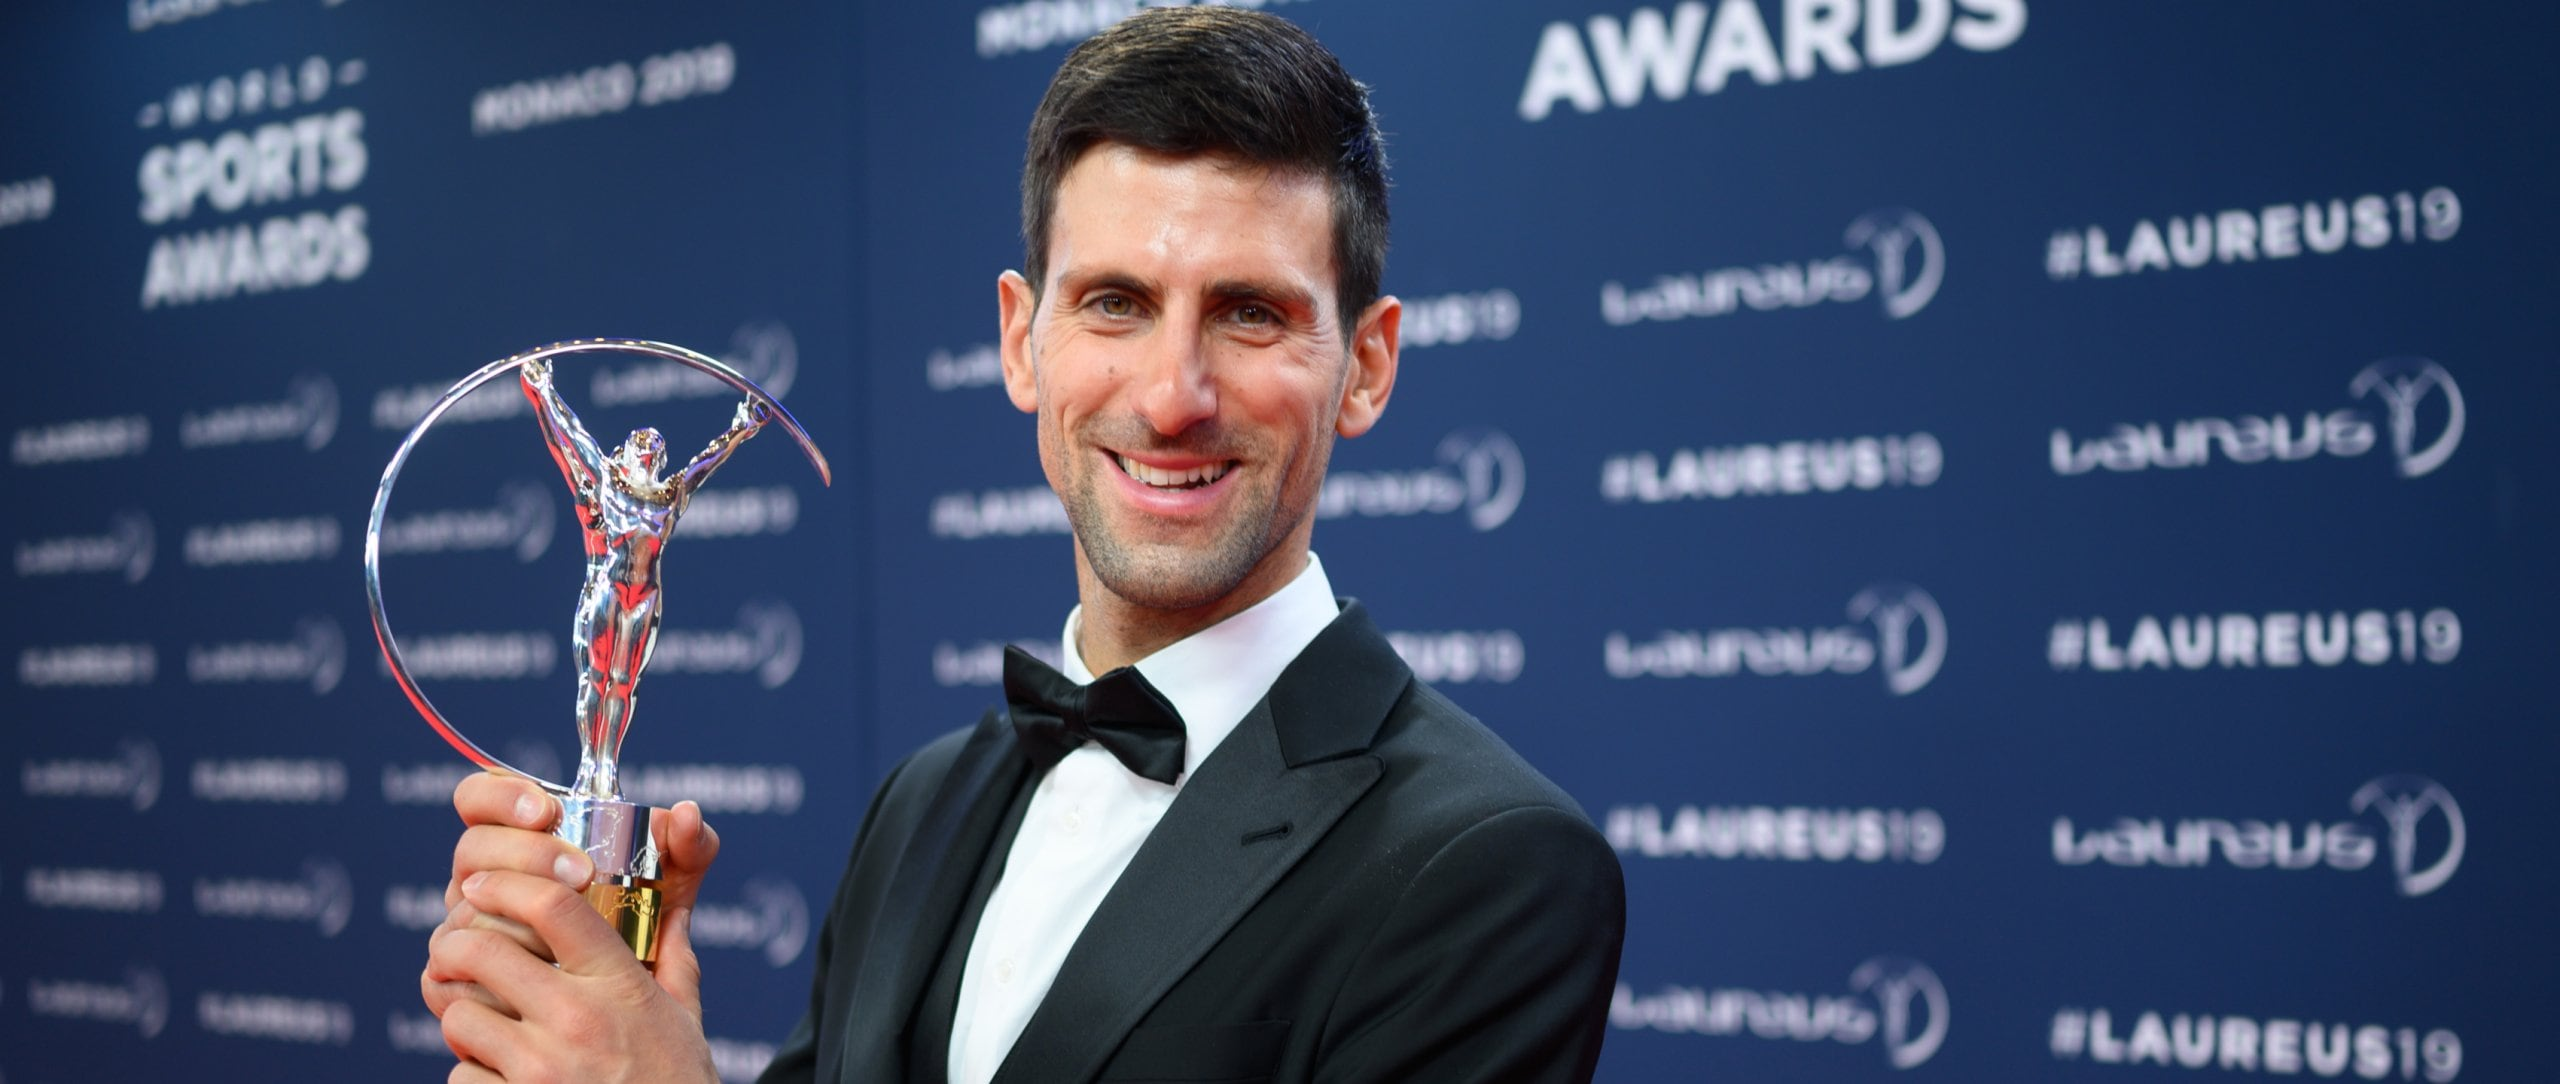 Novak Djoković (Laureus World Sportsman of the Year Award) with the trophy.